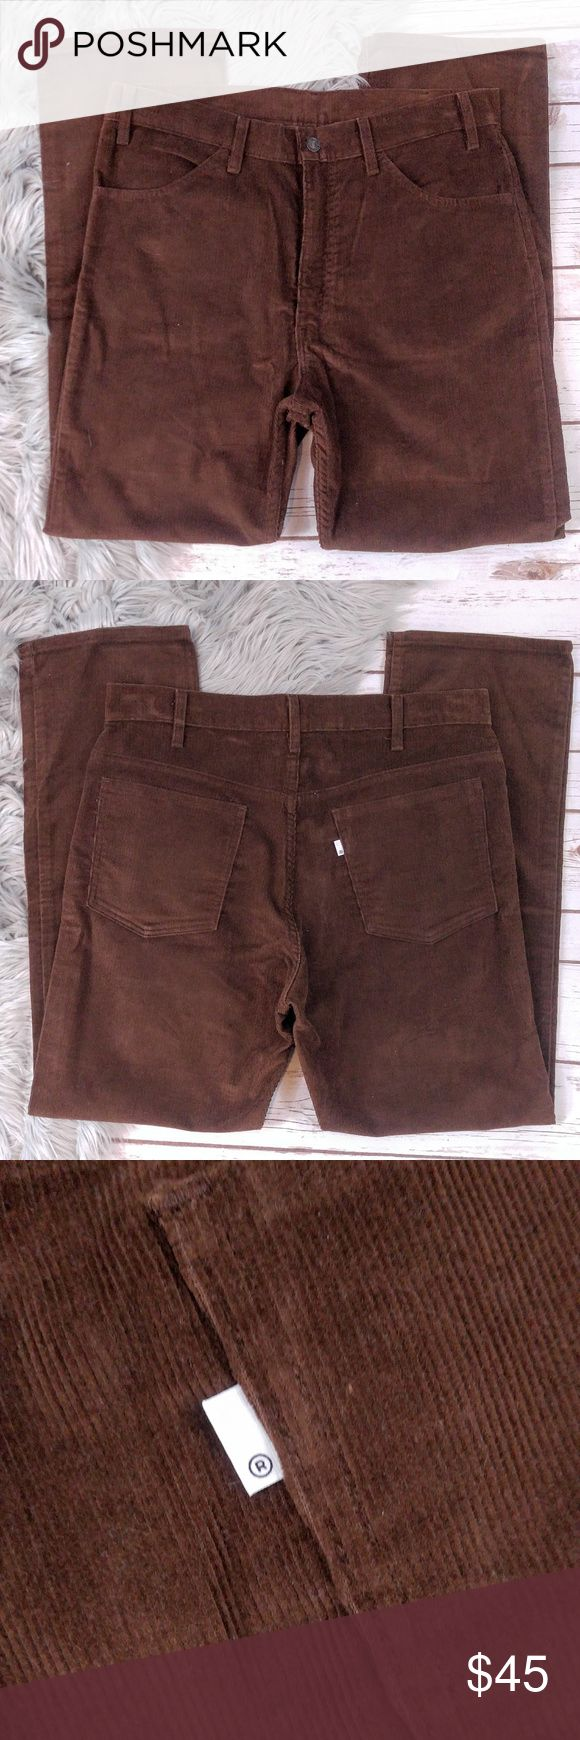 Levi's Vintage 1970's Brown Corduroy SF 207 Pants Levi's Vintage 1970's Brown Corduroy SF 207 Pants Extremely rare, in excellent condition almost new. Priced accordingly, I'm open to offers but please be reasonable. Size: 36 Waist Materials: Cotton Measurements while laying flat: Inseam: 30 Let me know if you have any questions, I'll reply within 24 hours. Levi's Pants Corduroy